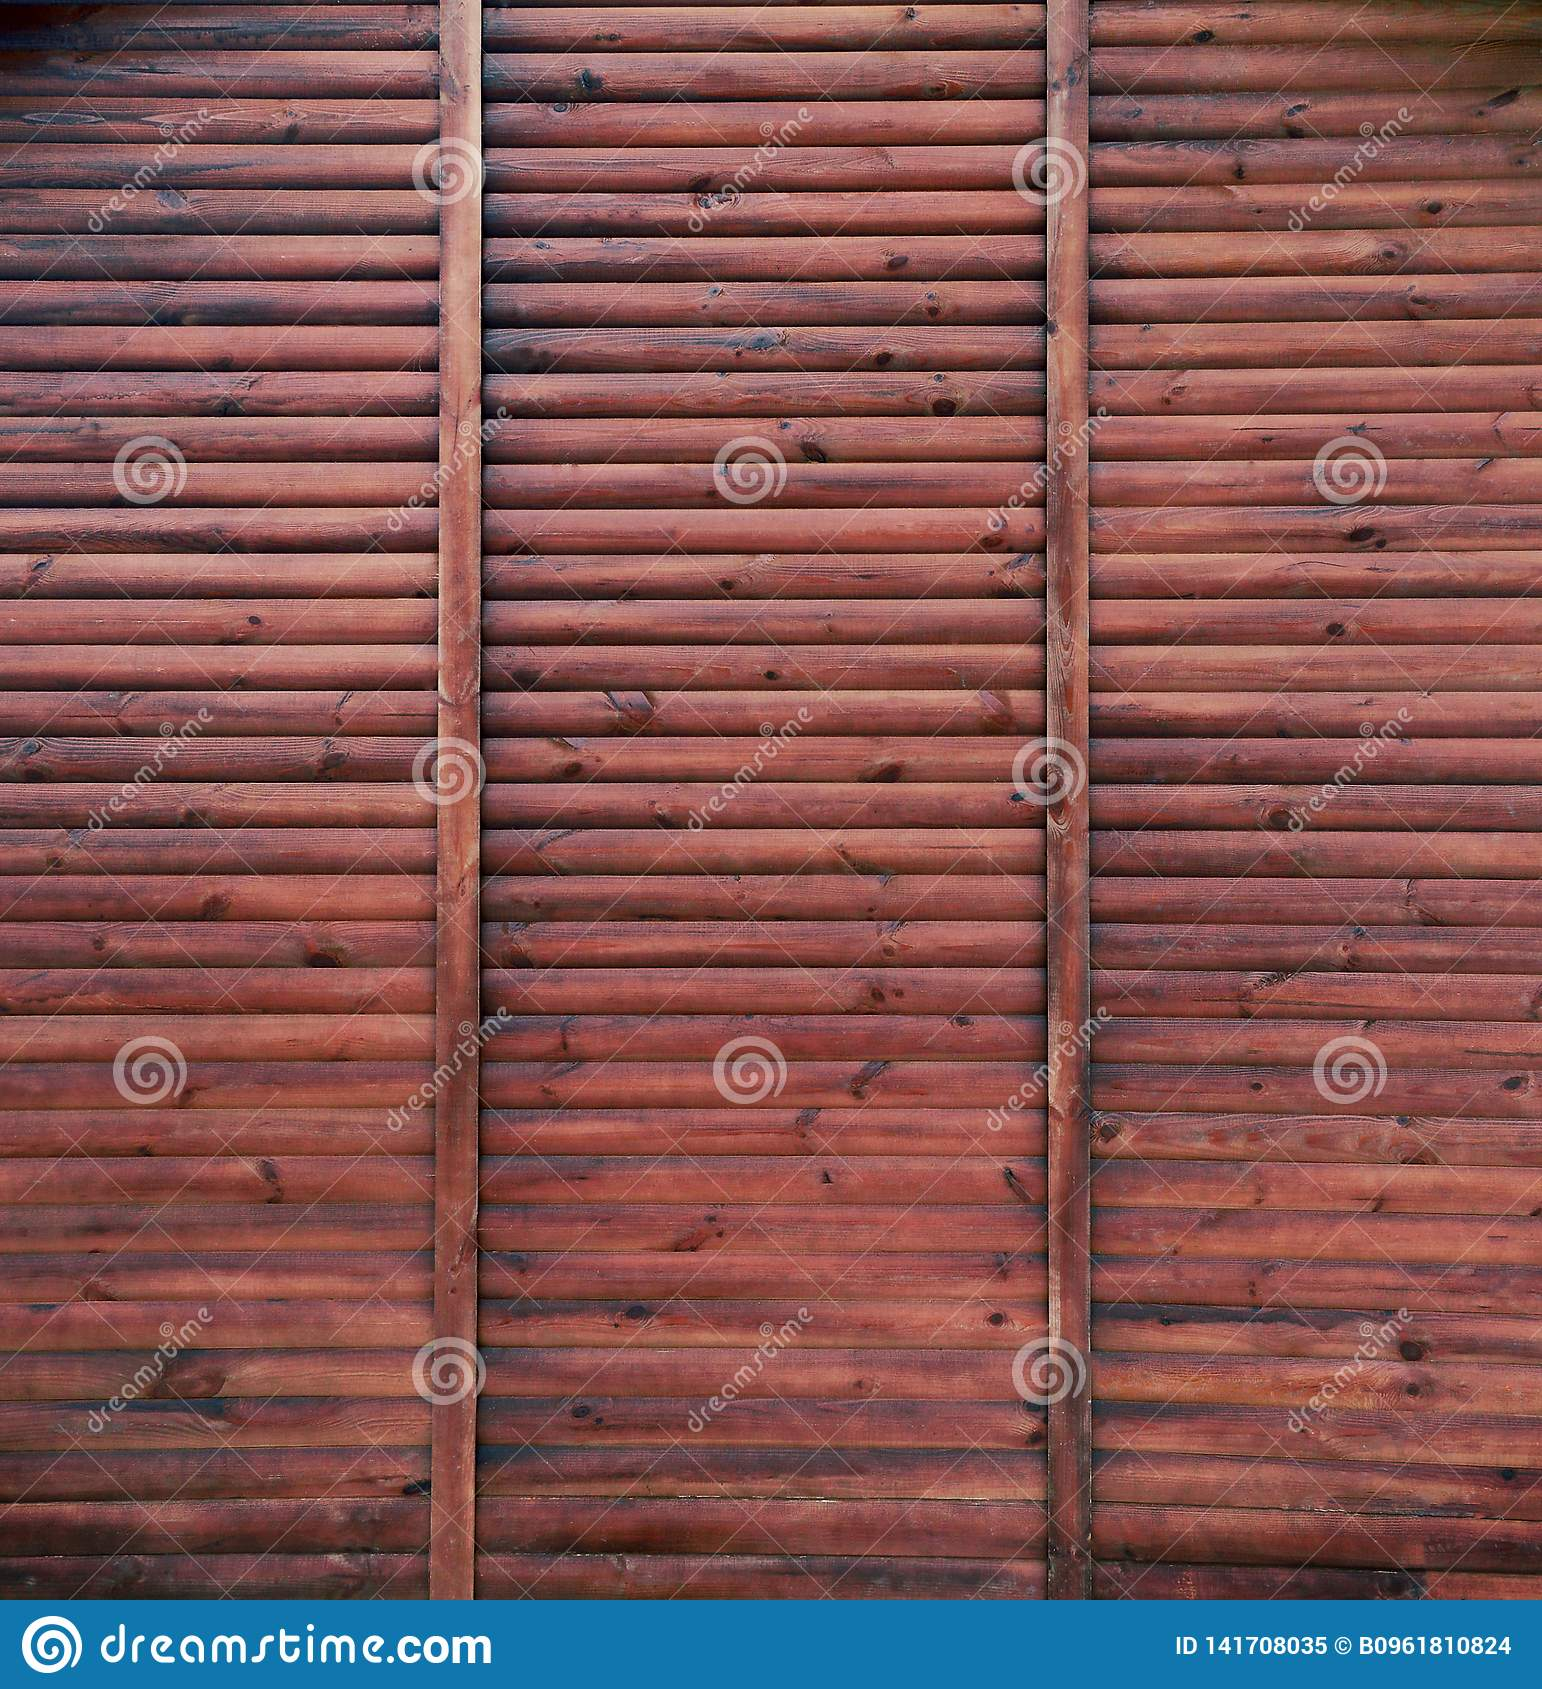 Beautiful Vintage Wood Texture. Faded Boards Background